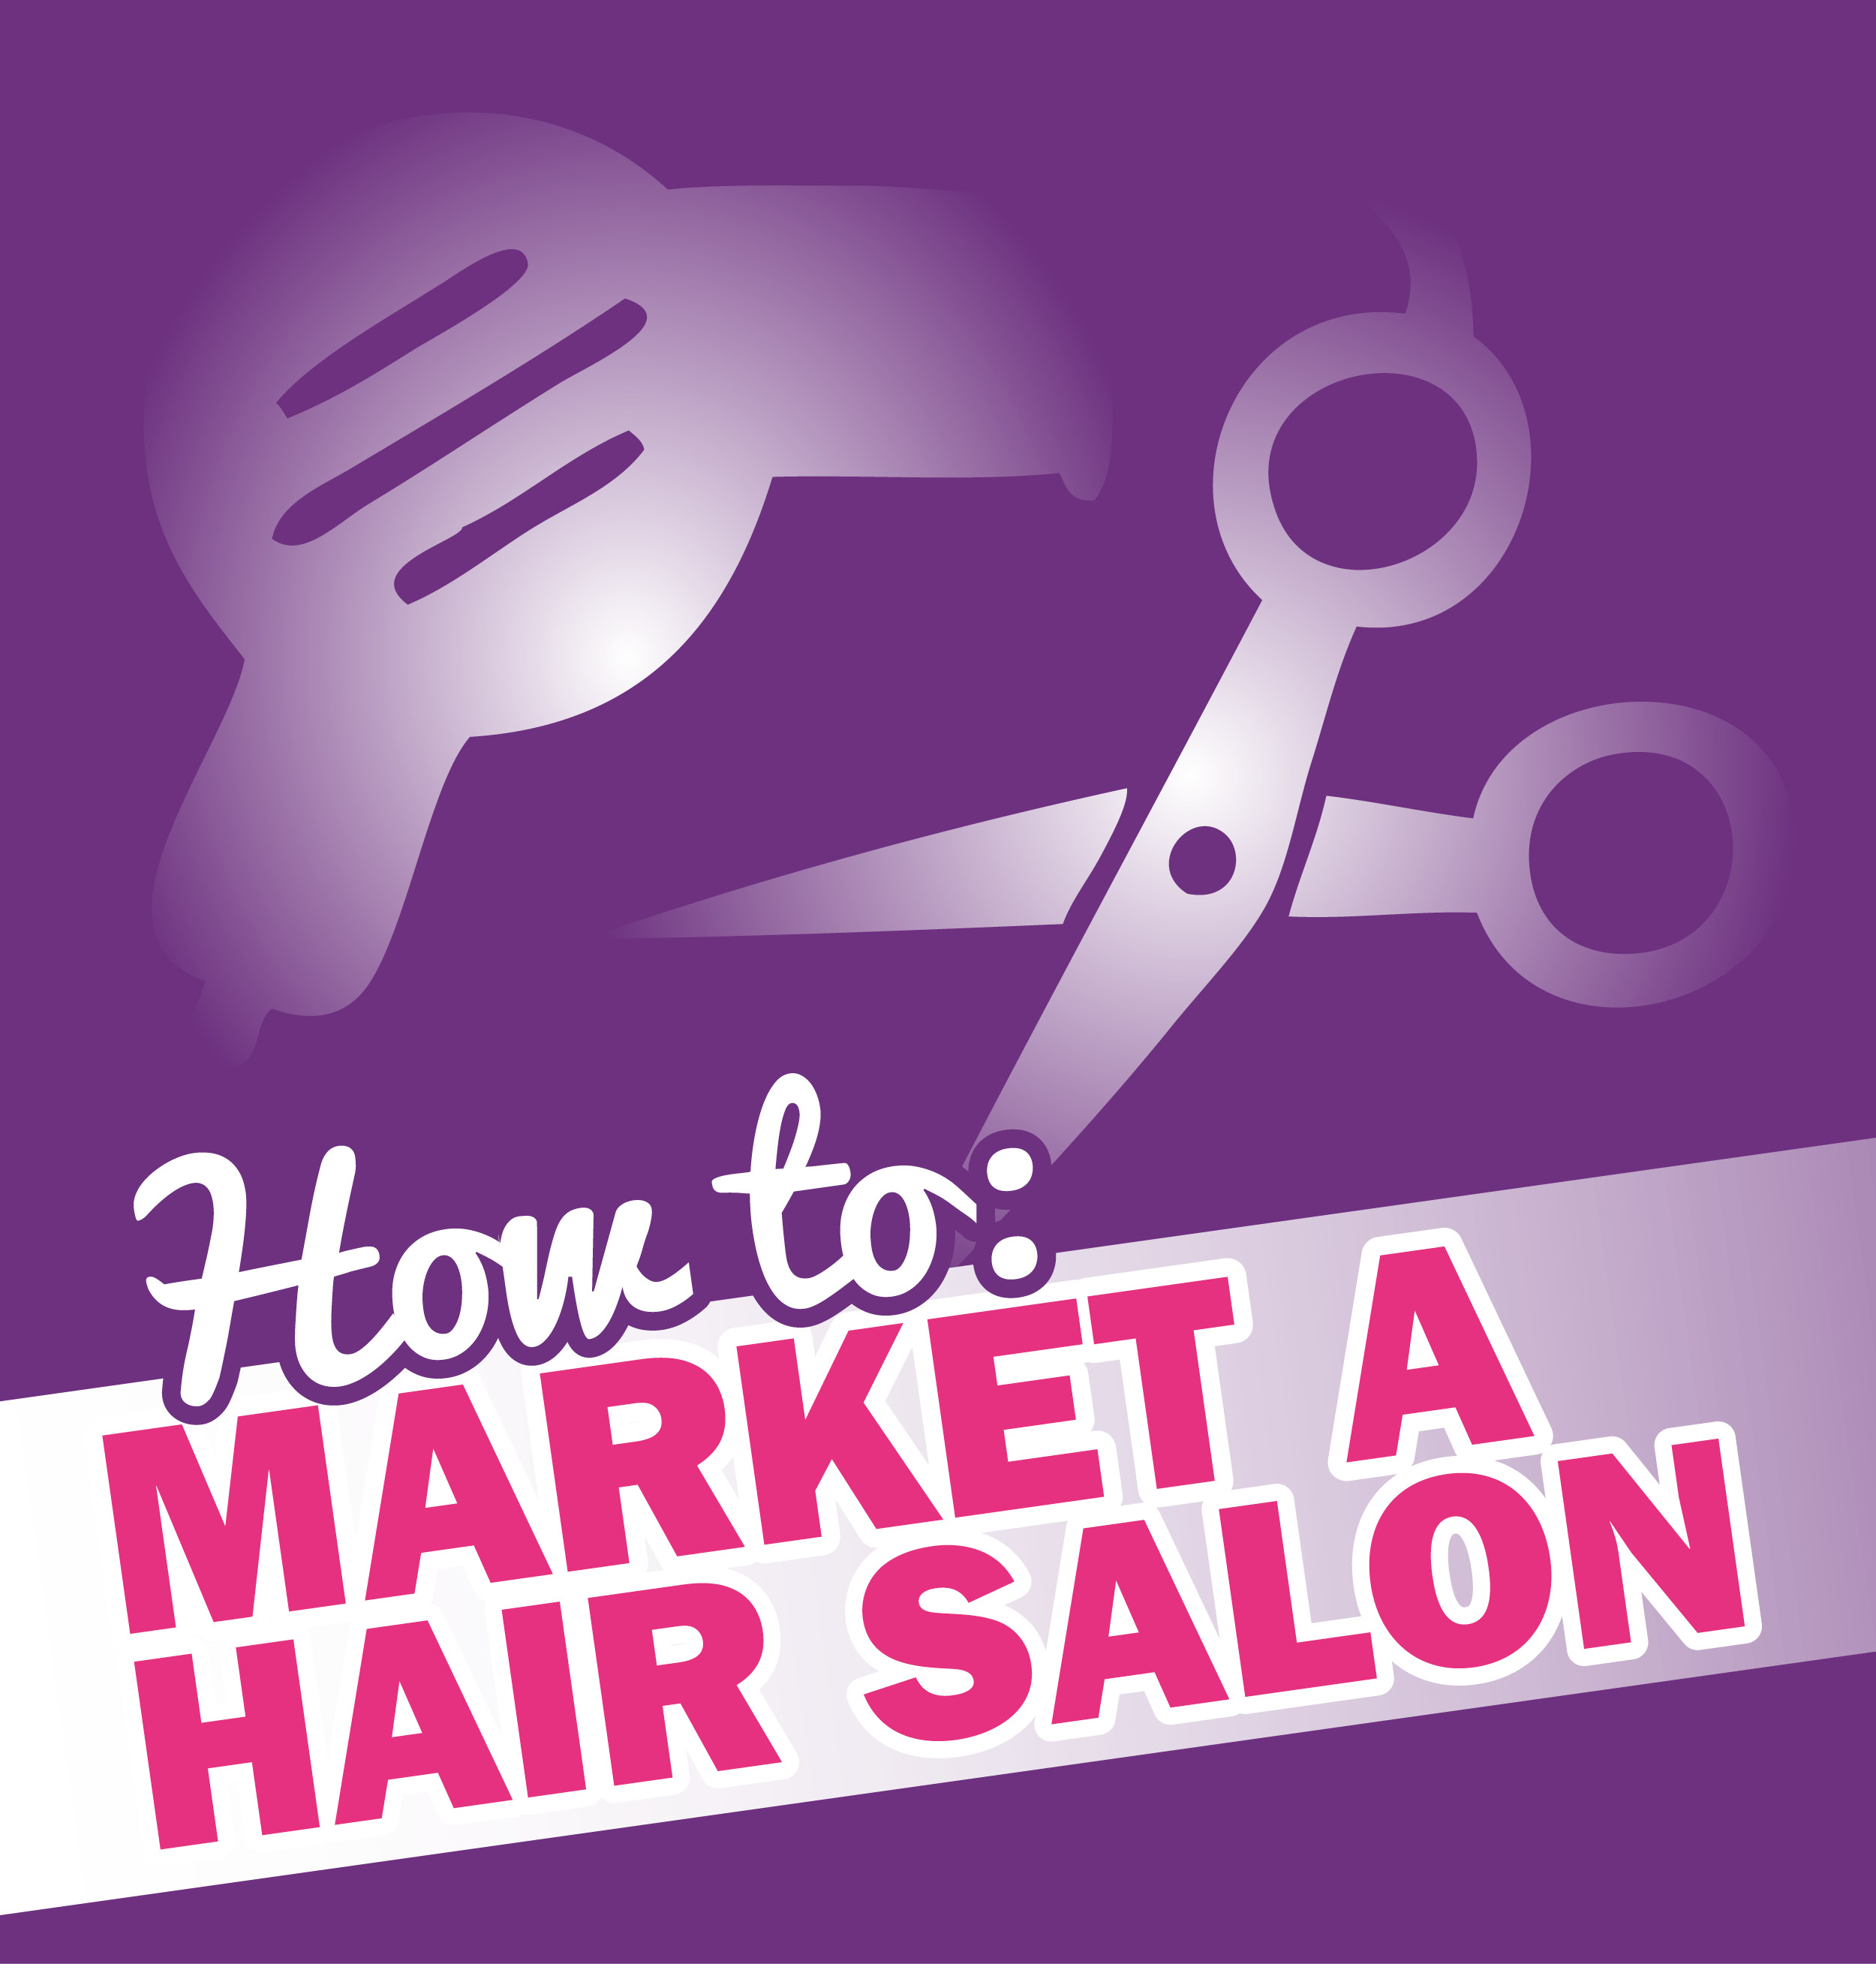 5 hair salon marketing ideas you can use instantly for Salon marketing